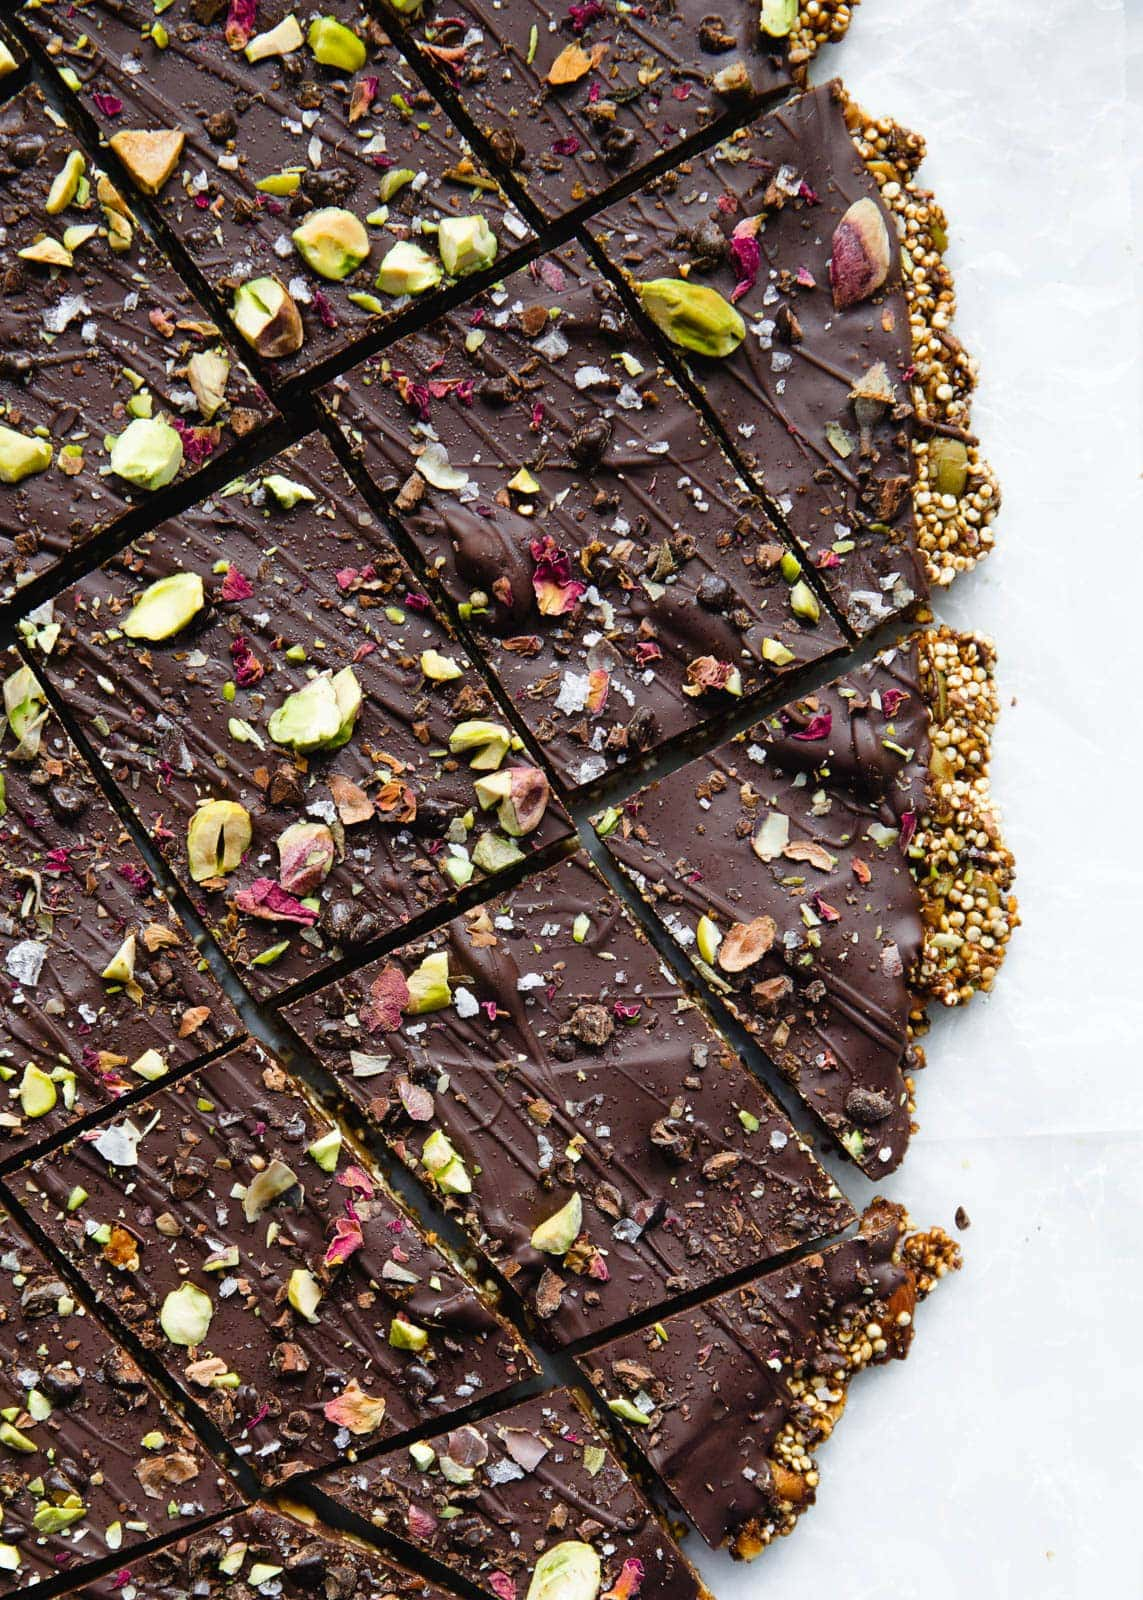 A healthier alternative to a chocolate bar, this Quinoa Chocolate Bark is filled with nuts and seeds to keep you full all afternoon!